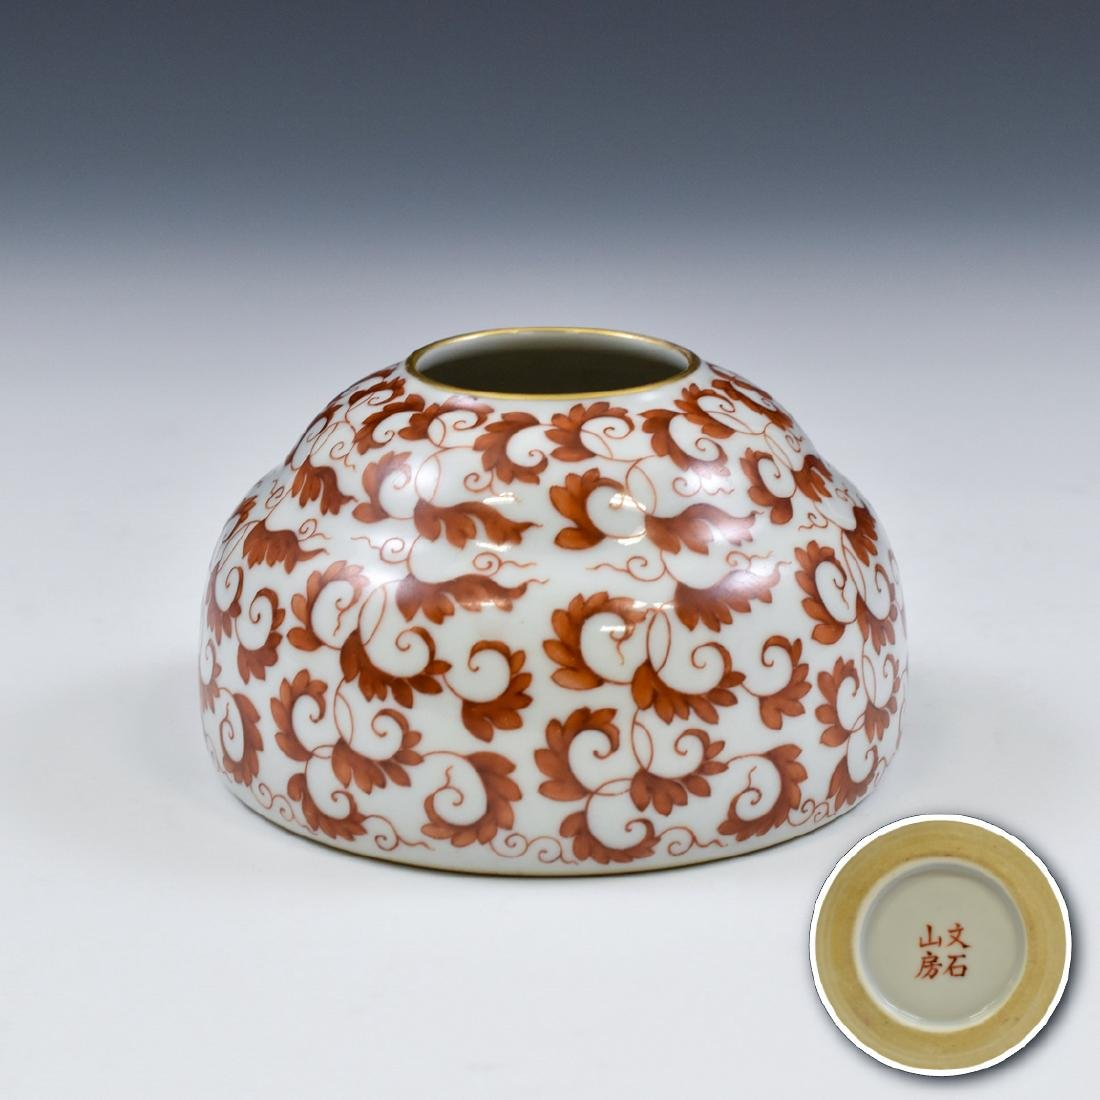 RED & WHITE GOURD SHAPED PORCELAIN BRUSH WASHER